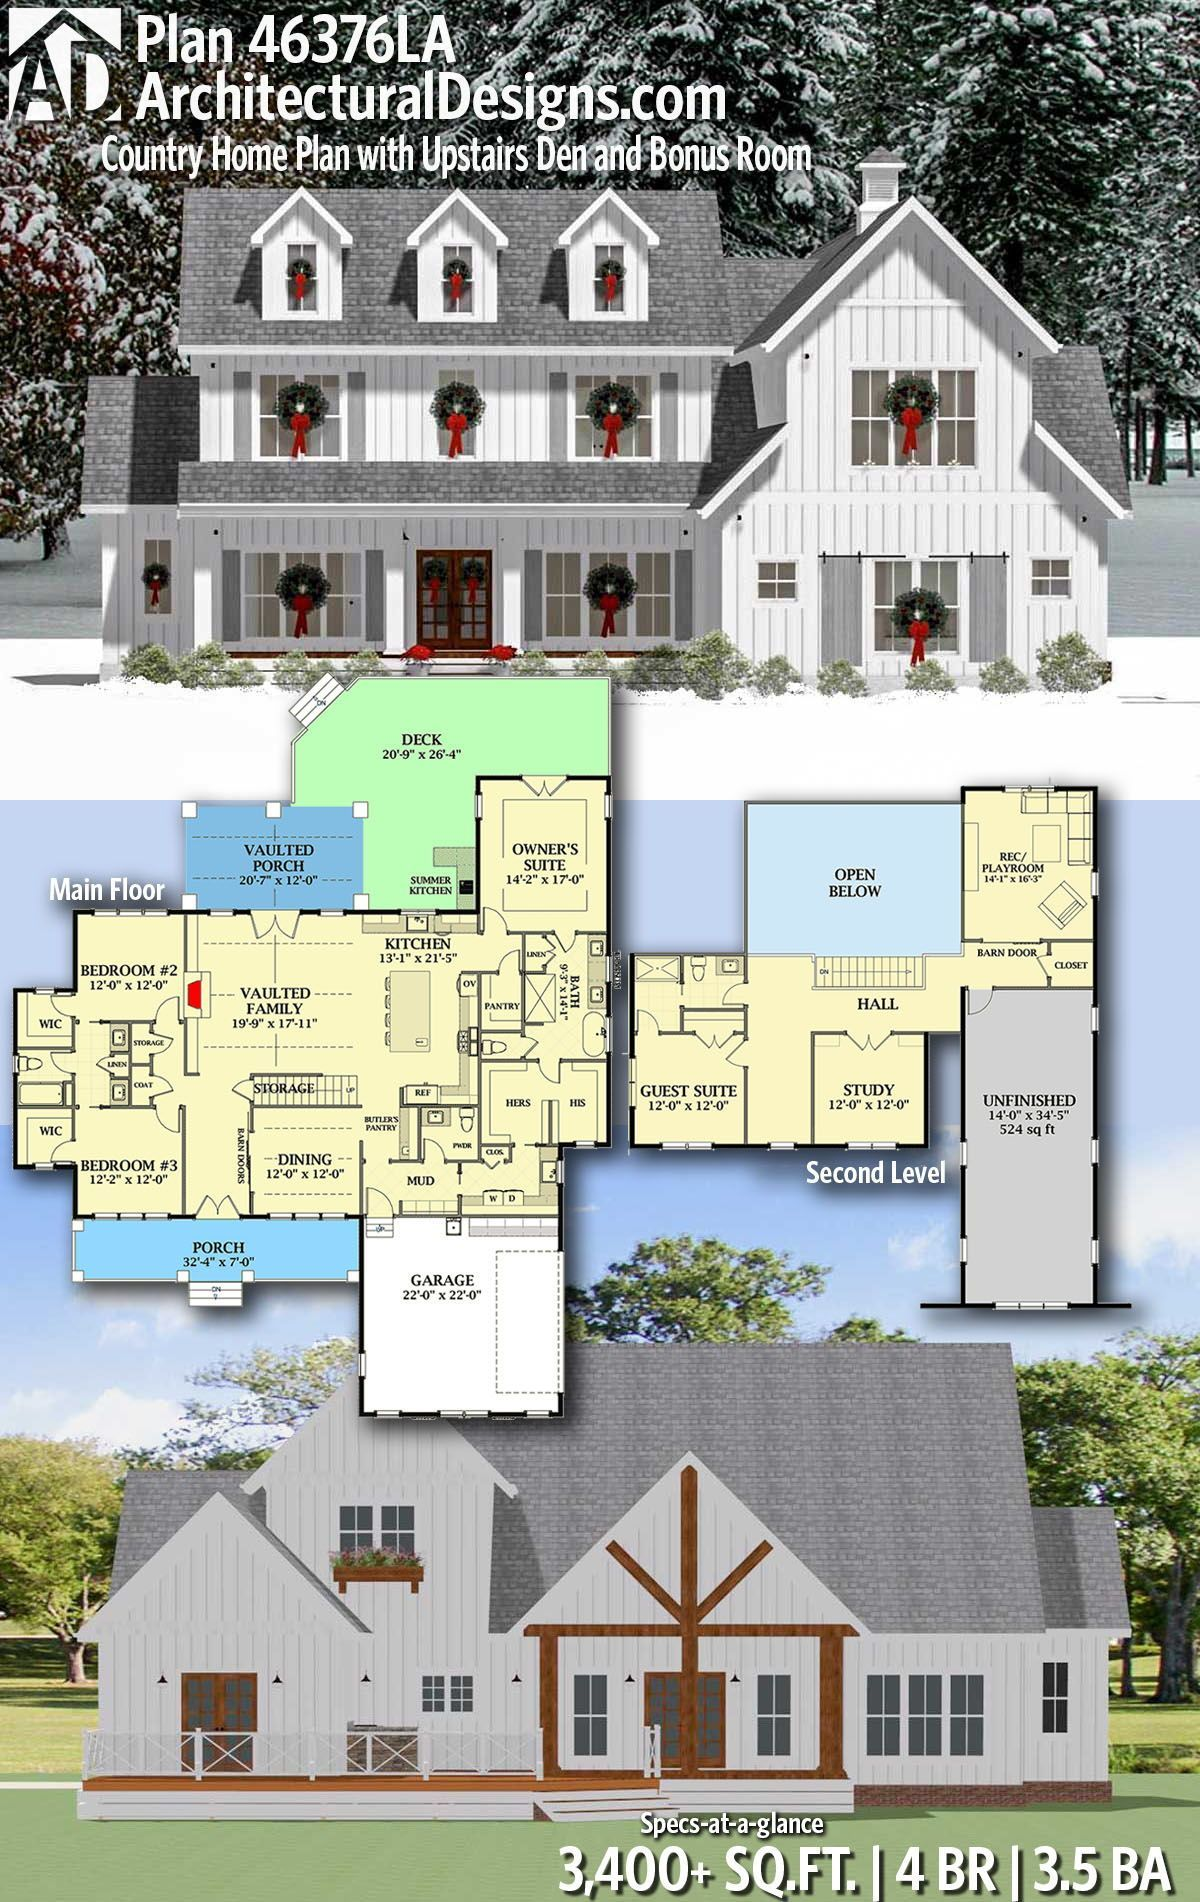 Plan 46376la Country Home Plan With Upstairs Den And Bonus Room